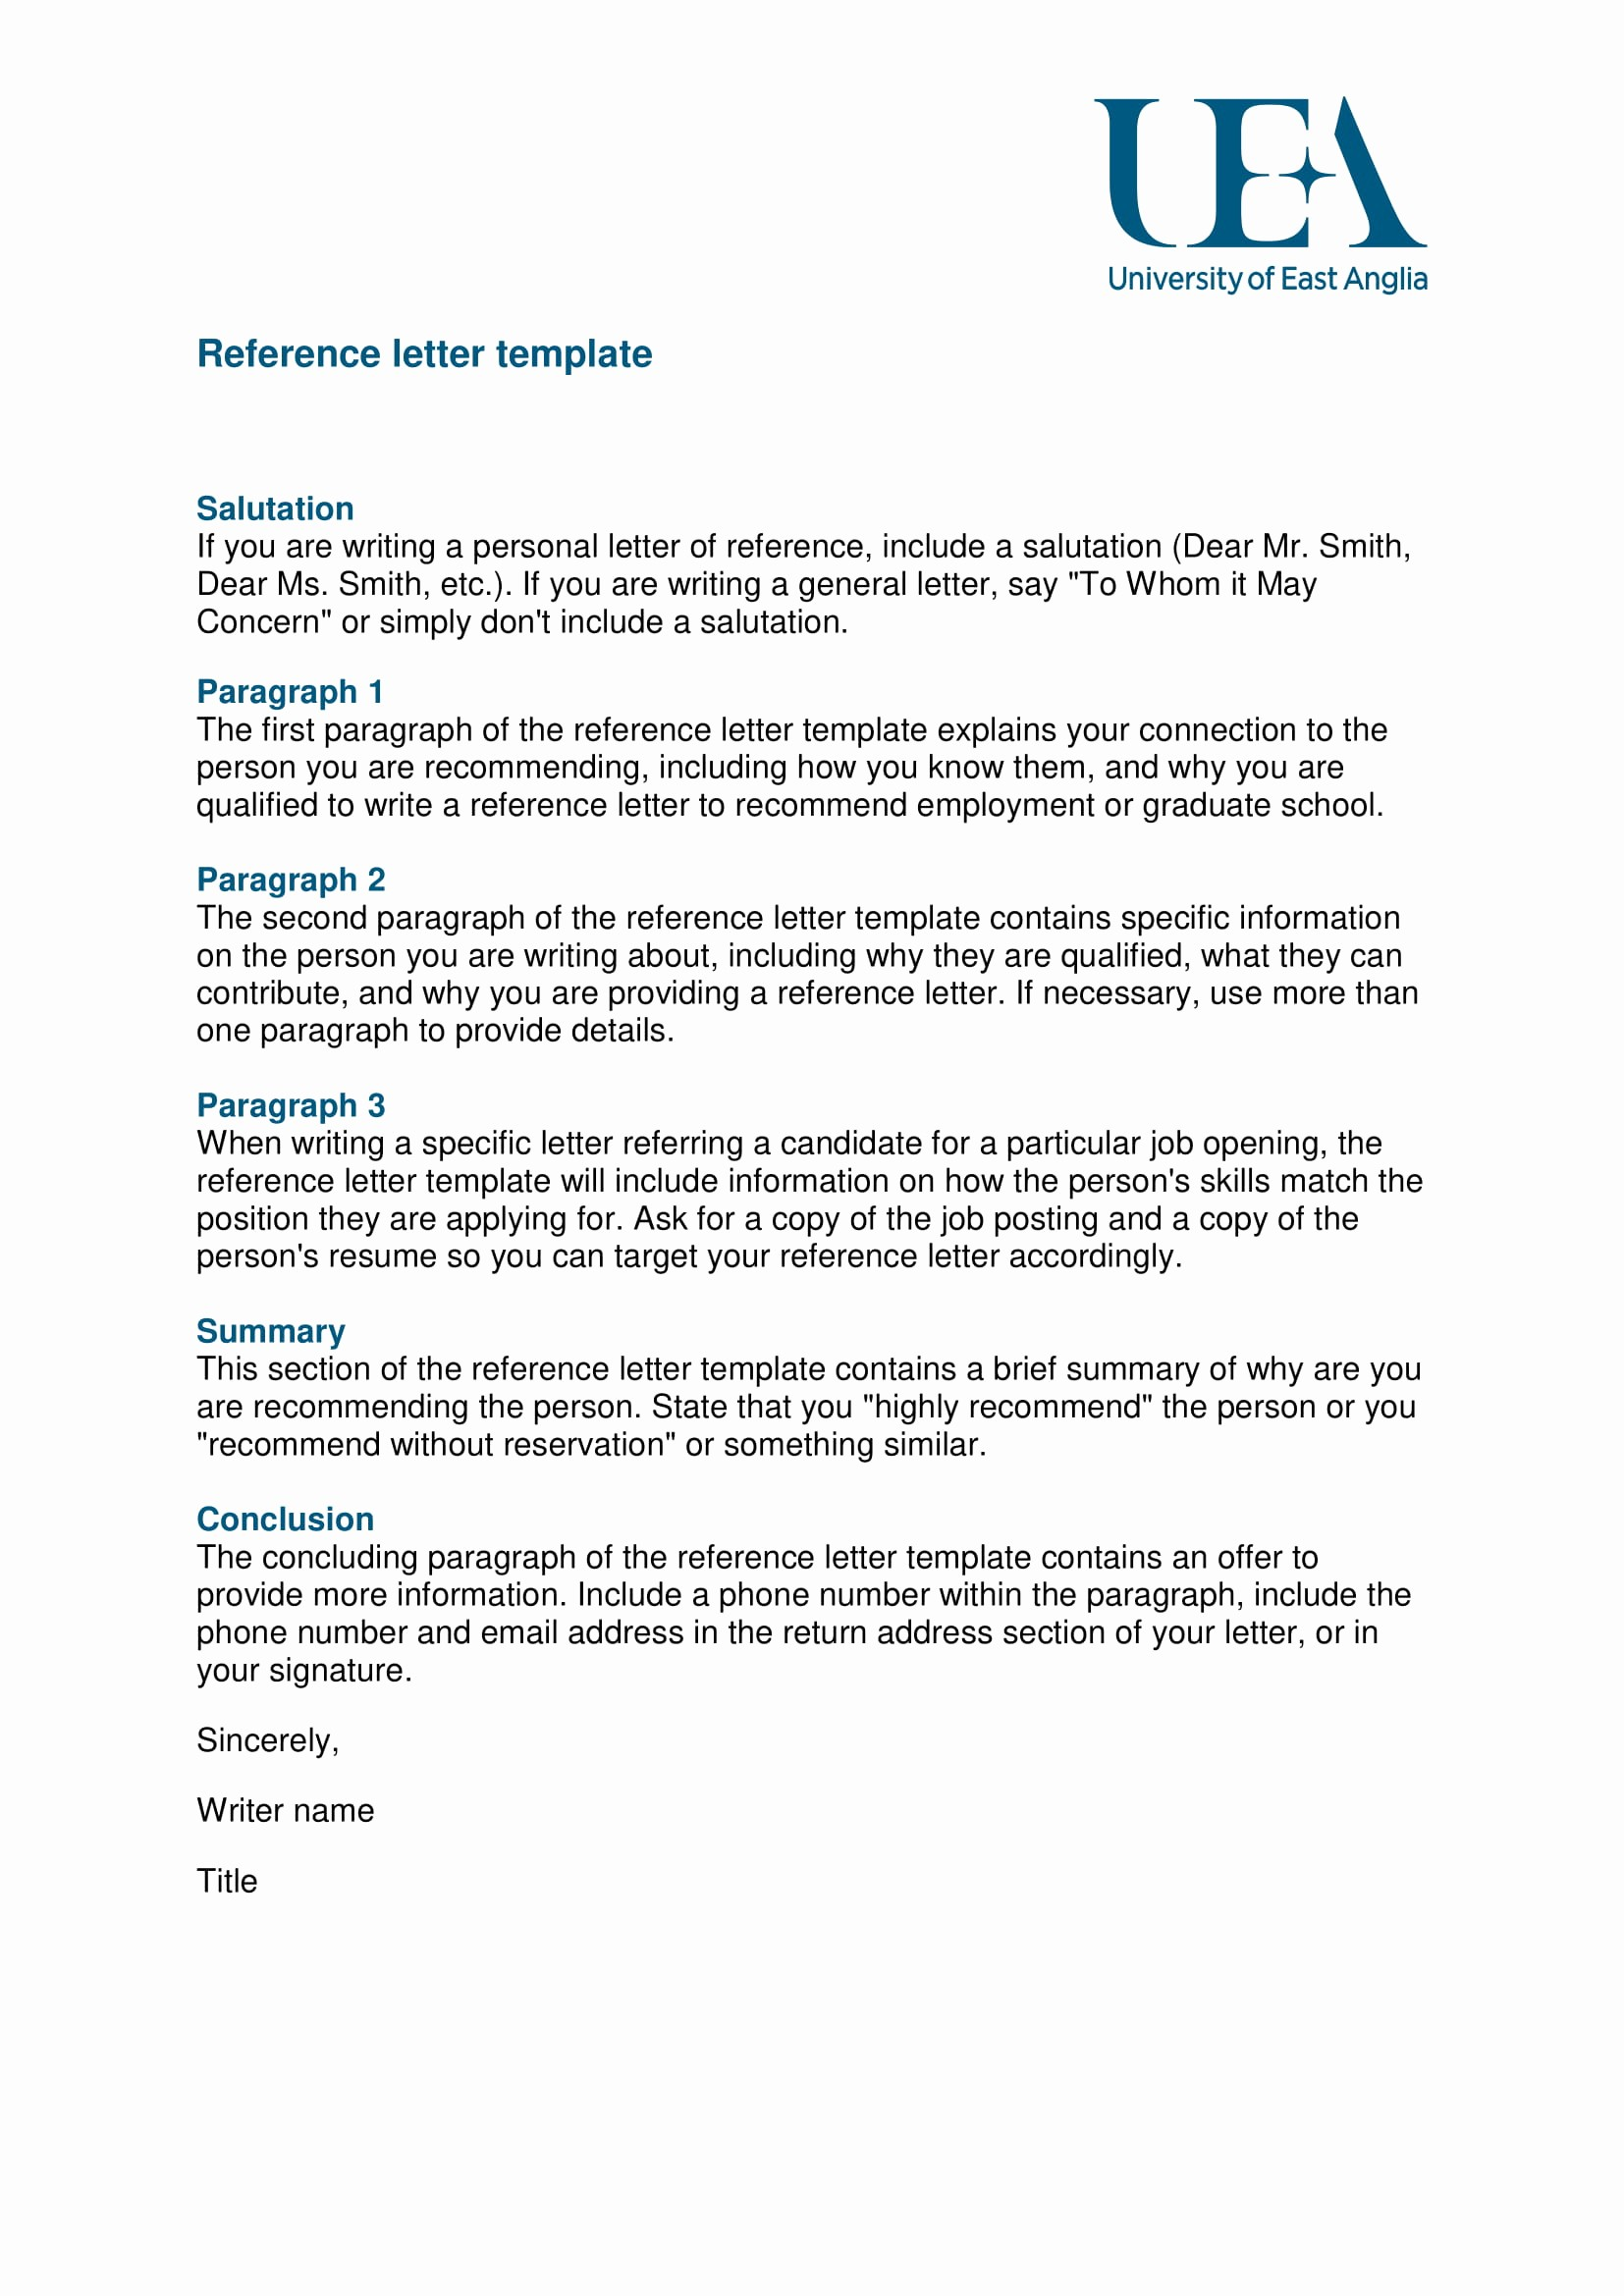 Letter Of Recommendation Employee Template Unique 9 Reference Letter From A Previous Employer Examples Pdf